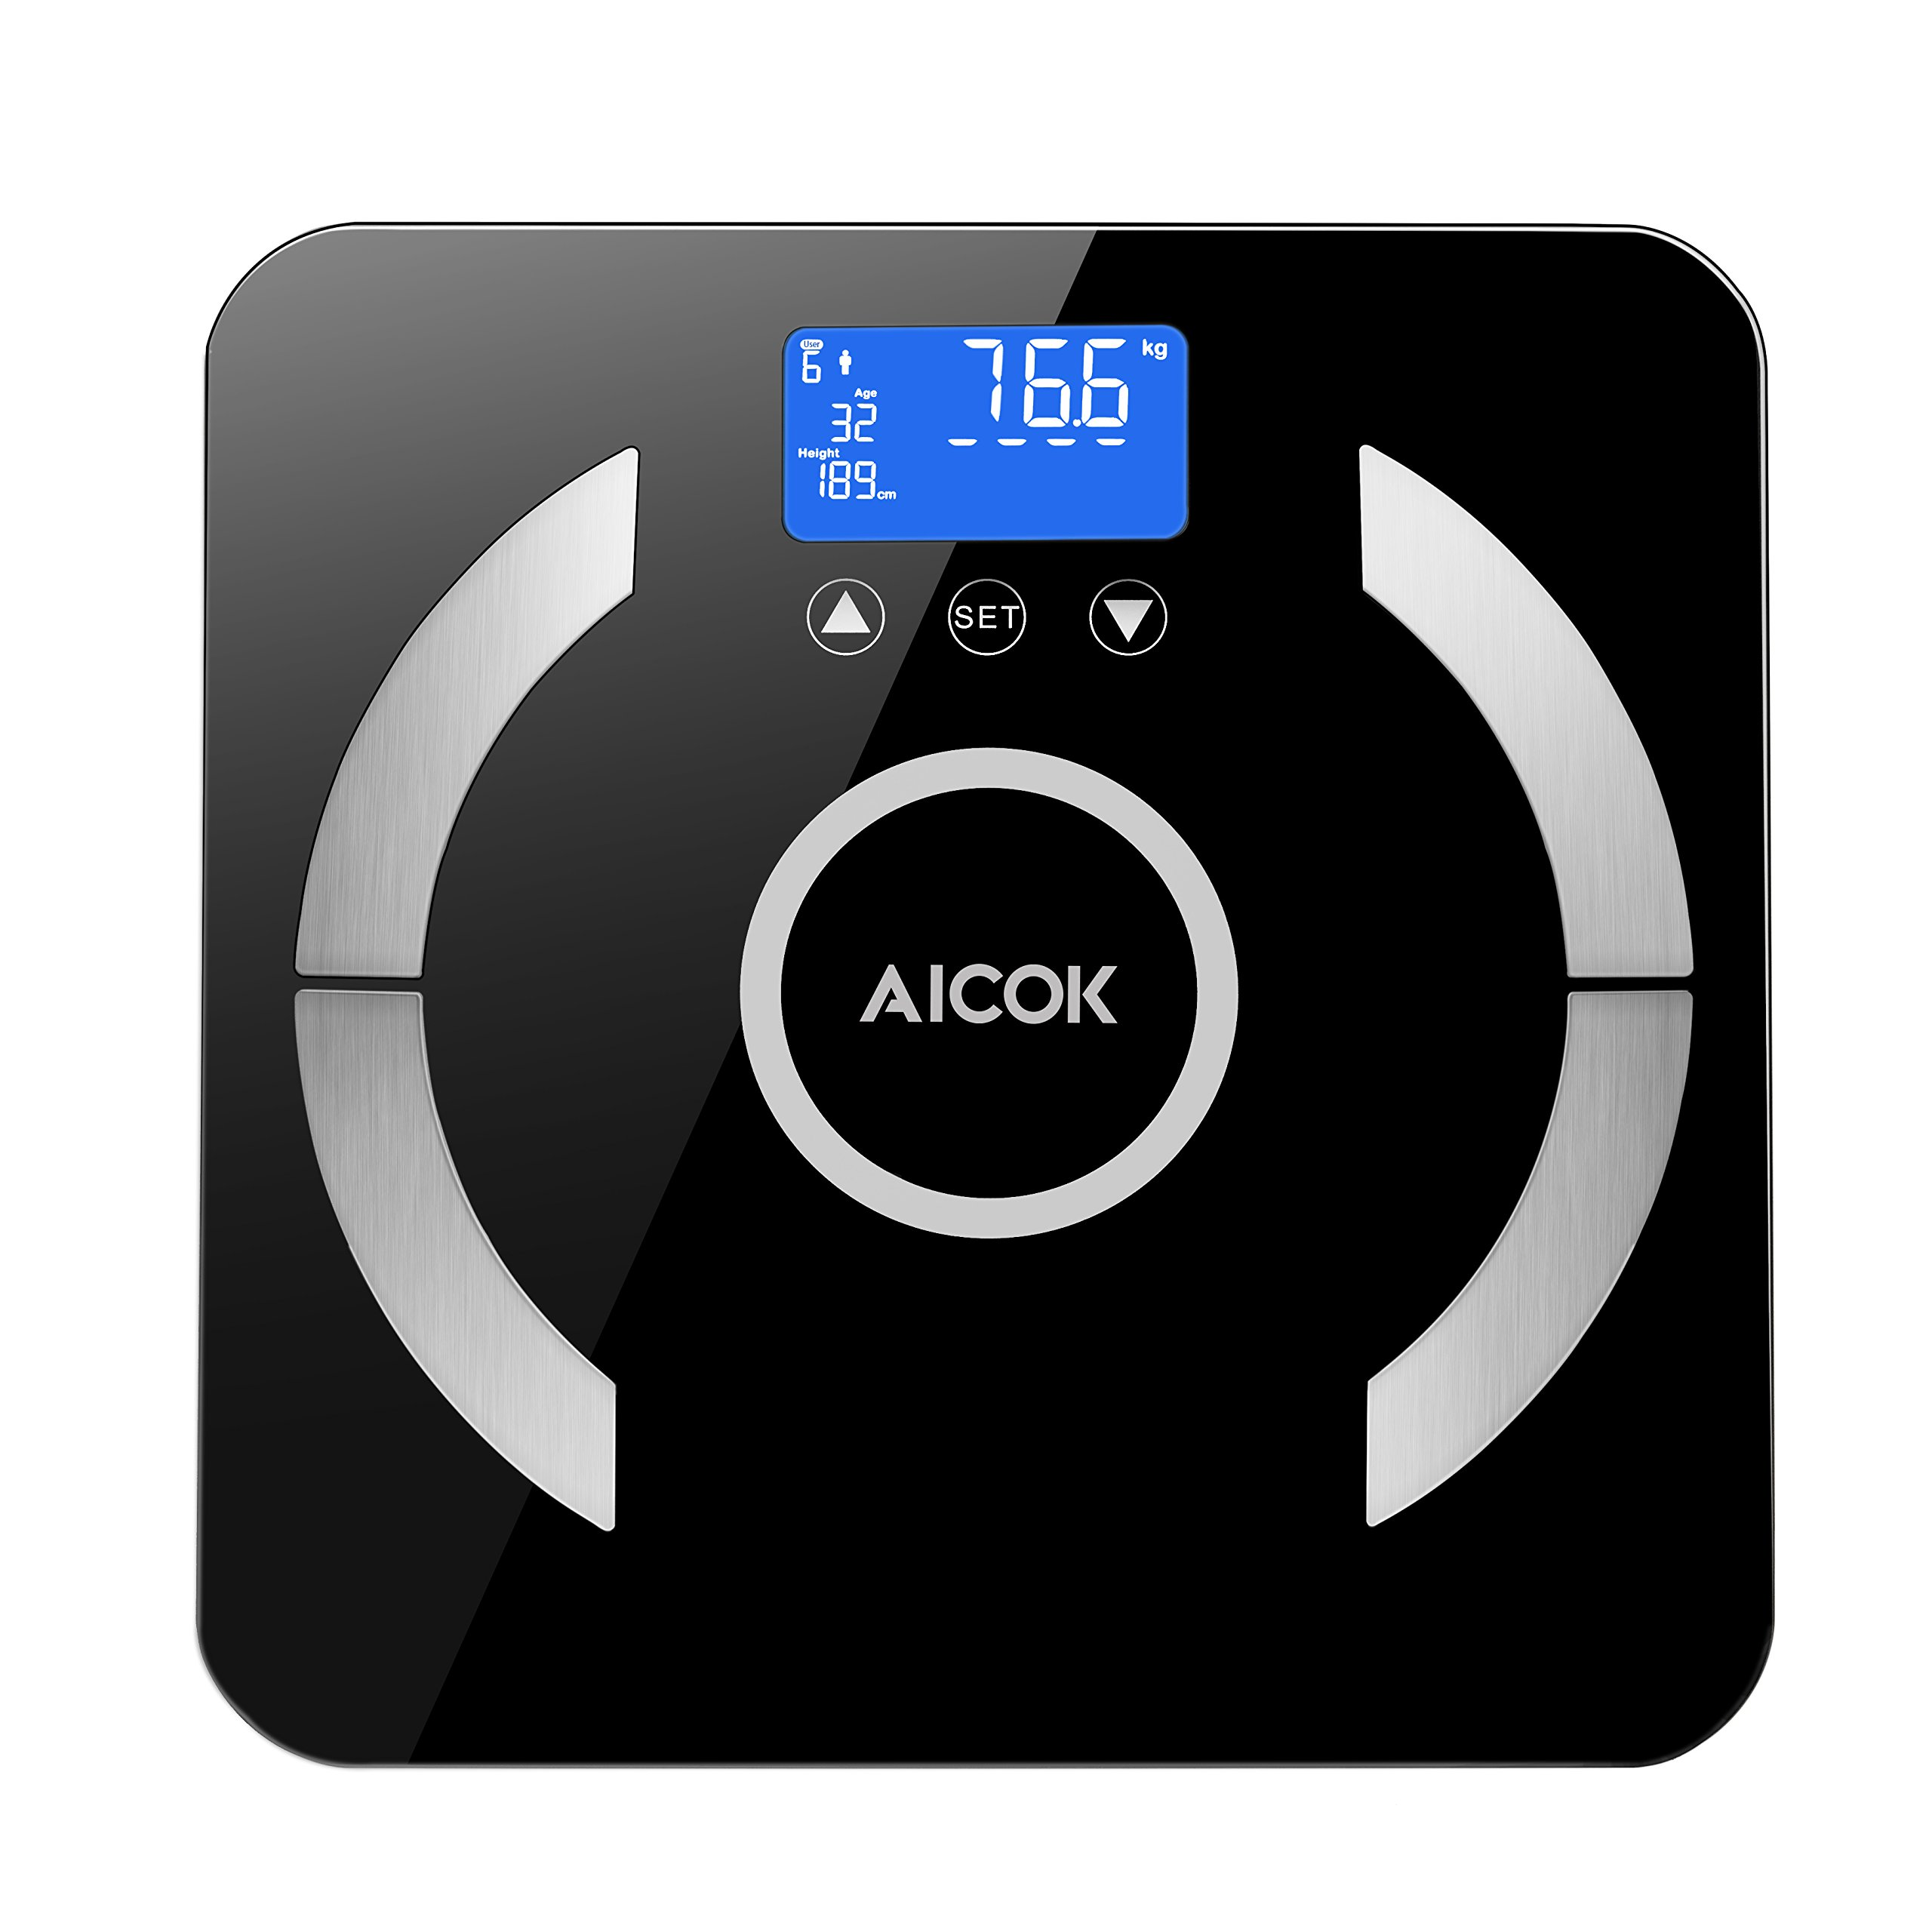 Aicok Digital Body Fat Weight Scale, Accurate Health Metrics,Measures Weight, Body Fat, Water, Bone Mass, 400 Lbs Capacity, Large Backlit Display(Inclus 4 * AAA batteries )